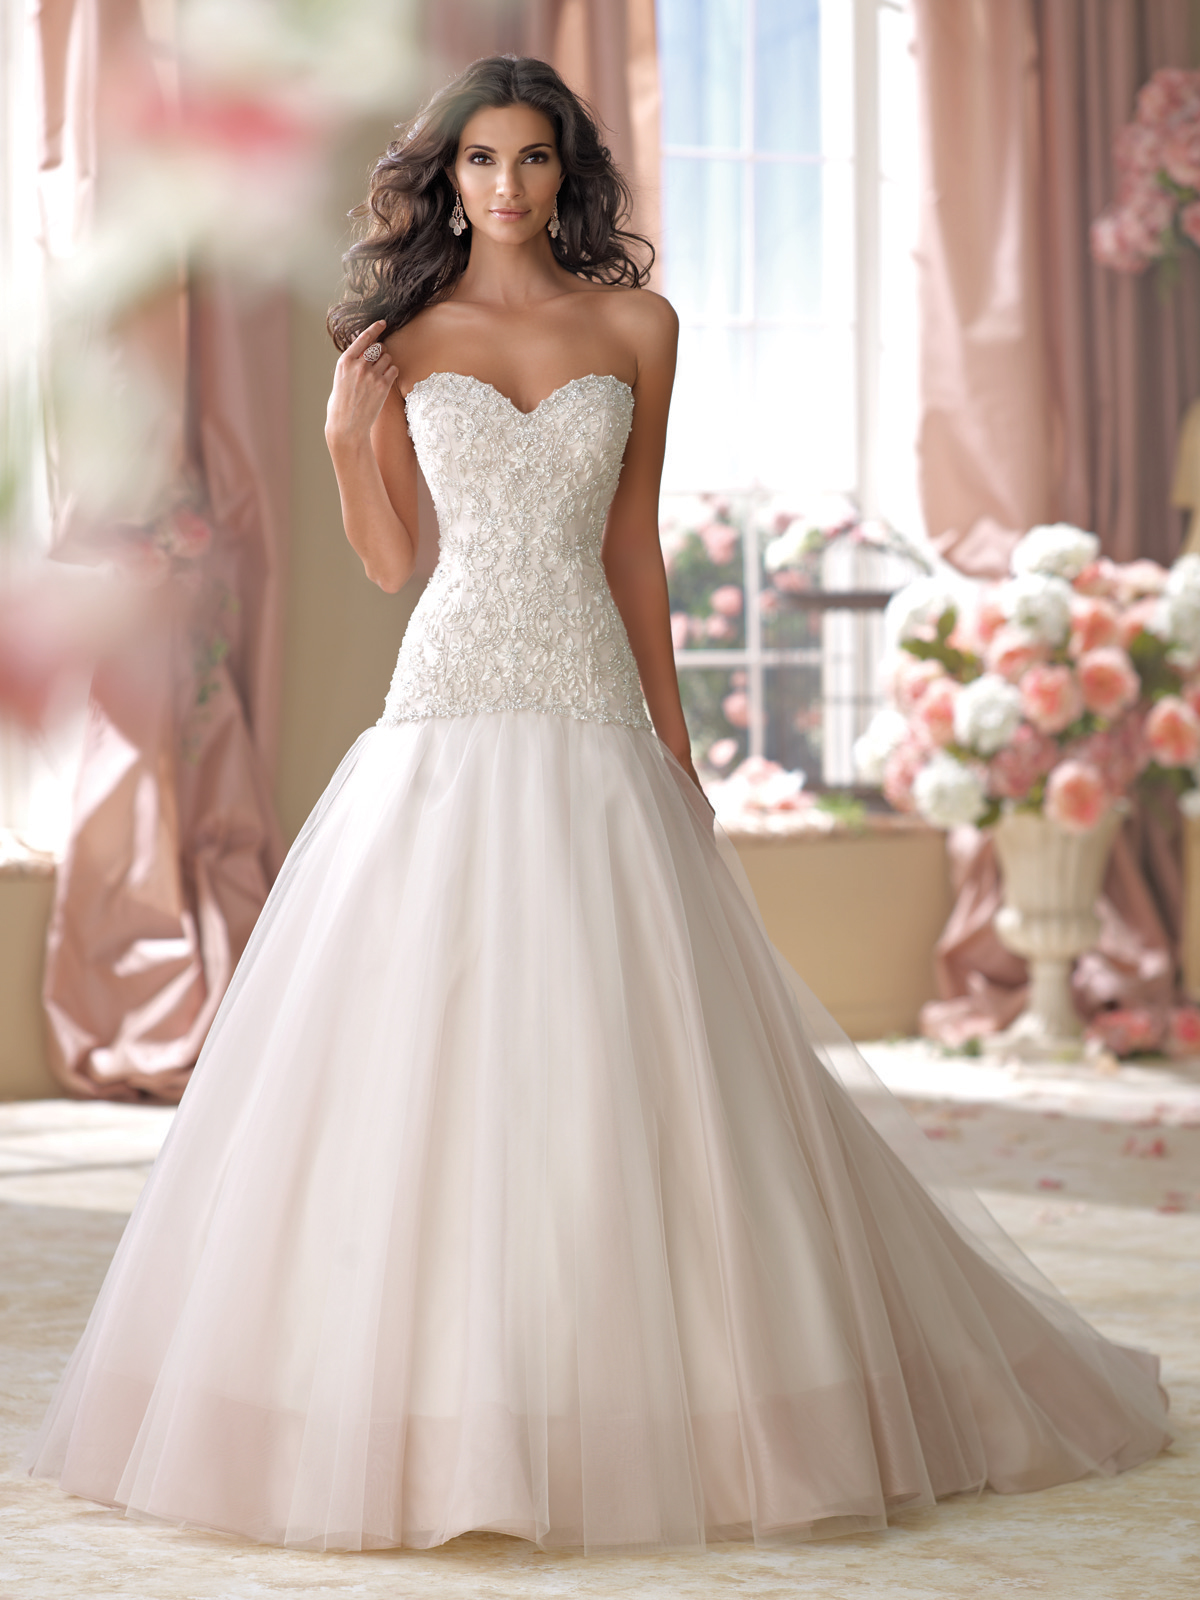 David Tutera Mon Cheri Bridal Gowns Cora #114270 · The Wedding Loft ...